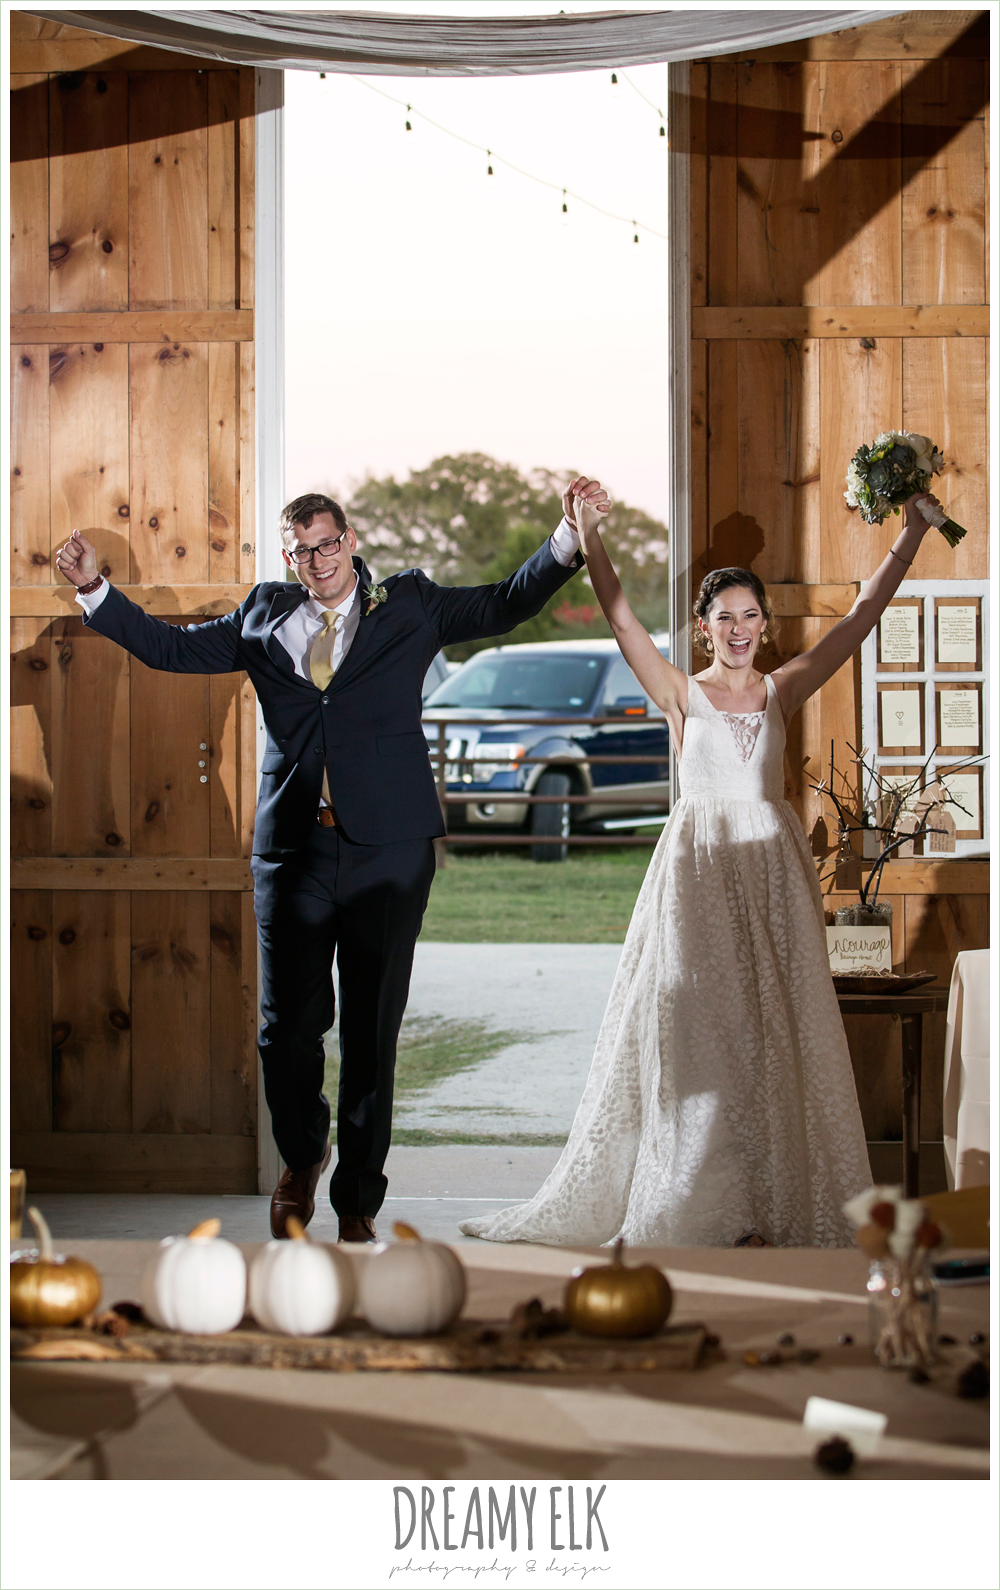 bride and groom entering reception, barn wedding reception, fall rustic chic wedding photo, the amish barn at edge {dreamy elk photography and design}